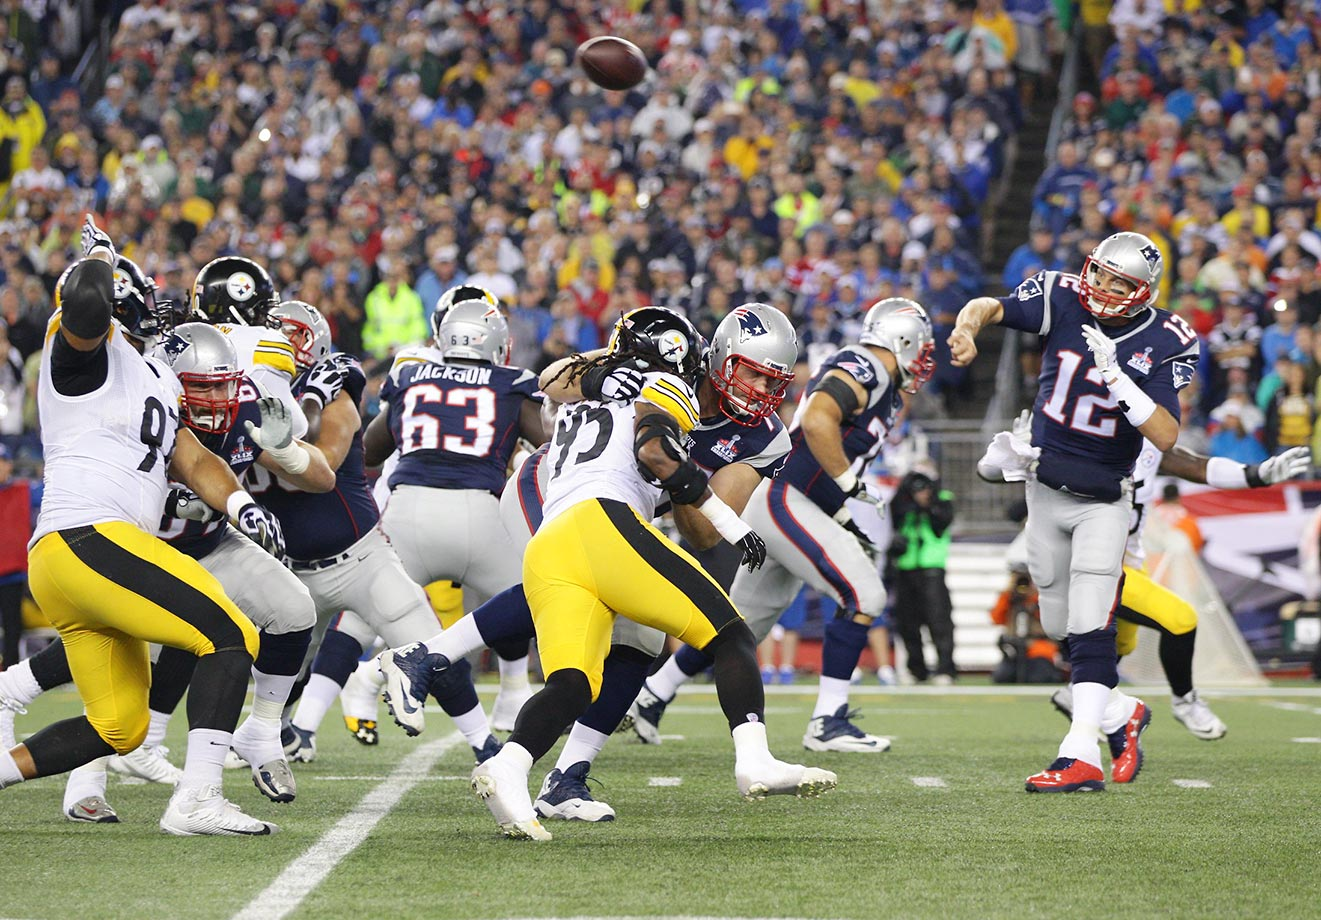 Tom Brady passes behind blocking by (from left) LG Josh Kline (67), C David Andrews (60), RG Tre' Jackson, LT Nate Solder (77) and RT Sebastian Vollmer (76).